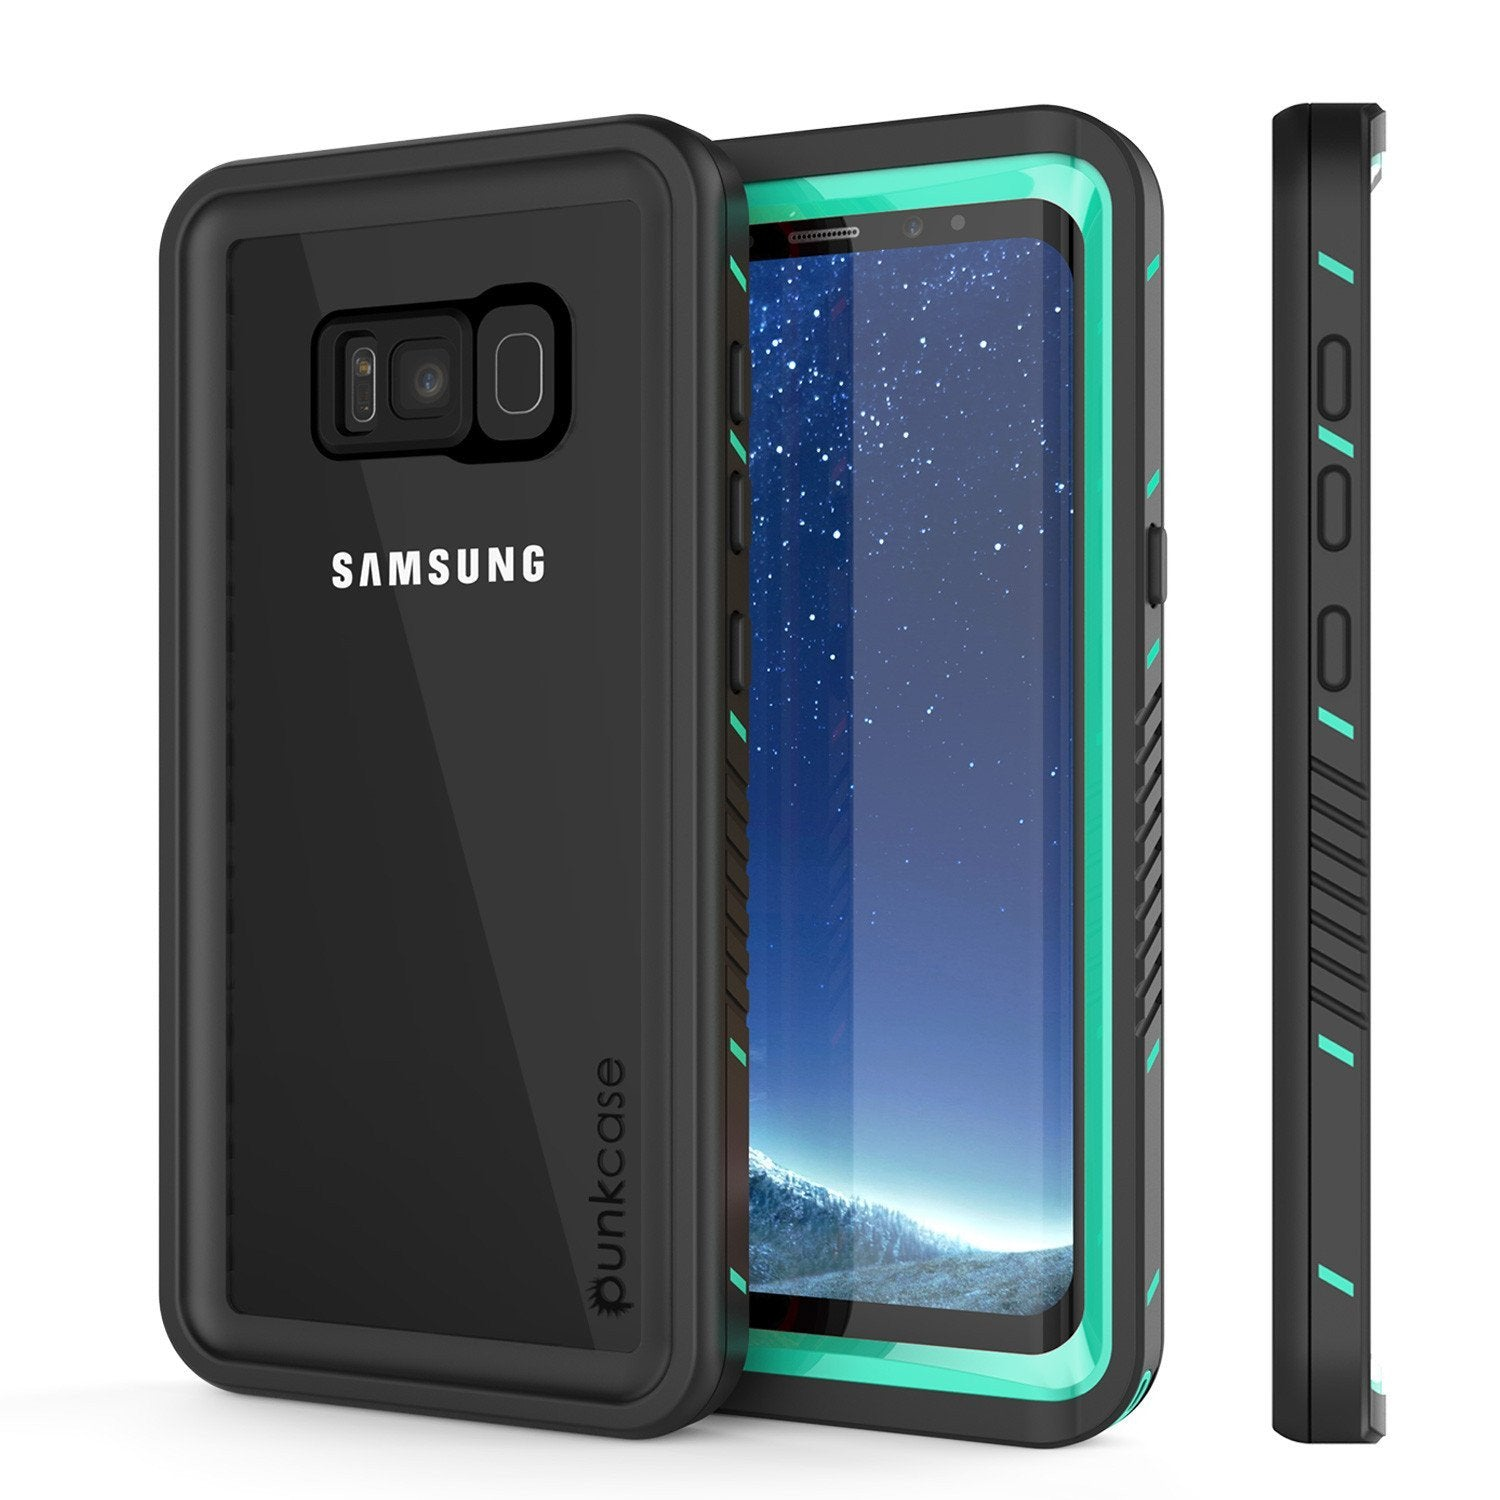 Galaxy S8 Case, Punkcase [Extreme Series] Armor Teal Cover